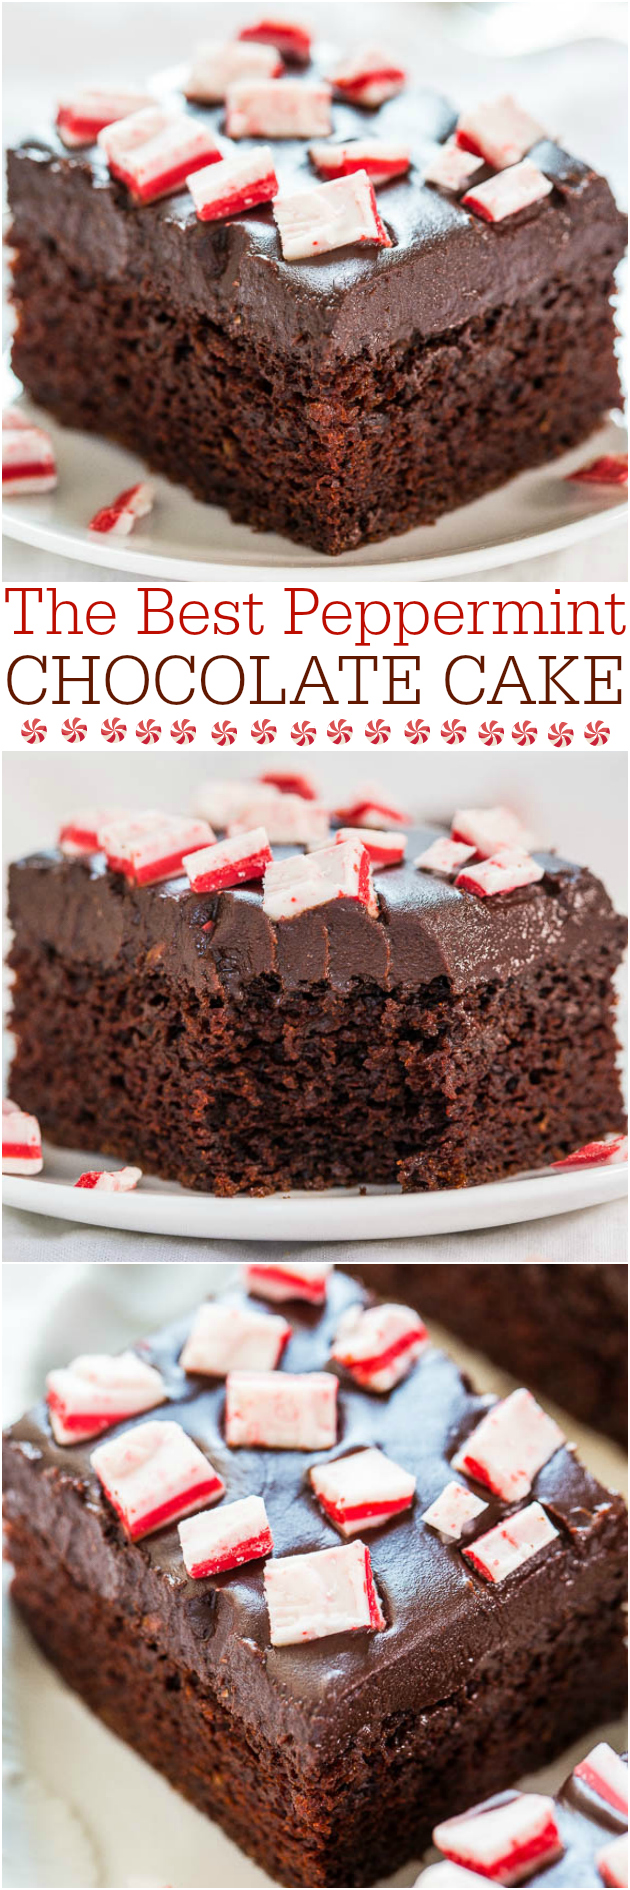 The Best Chocolate Peppermint Cake — Easy, one-bowl, no mixer cake! Decadently chocolaty, perfectly pepperminty! Your new favorite cake!!